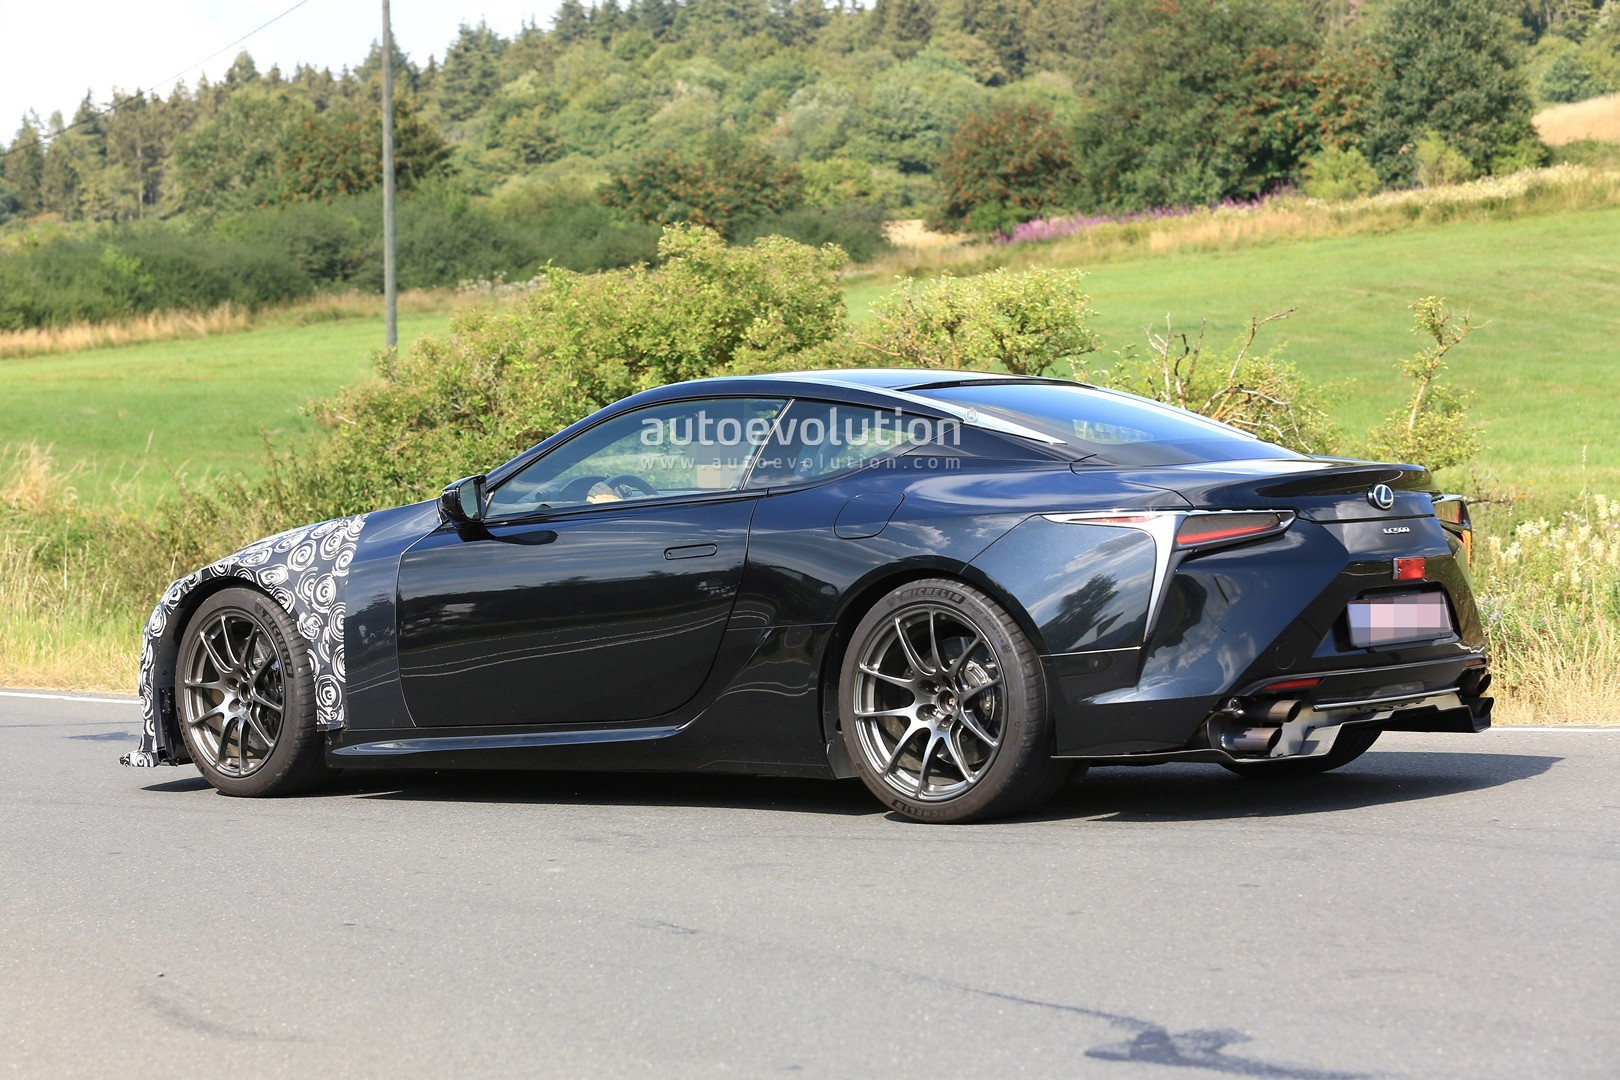 2020 Lexus LC F Spied for the First Time, Looks to Become ...